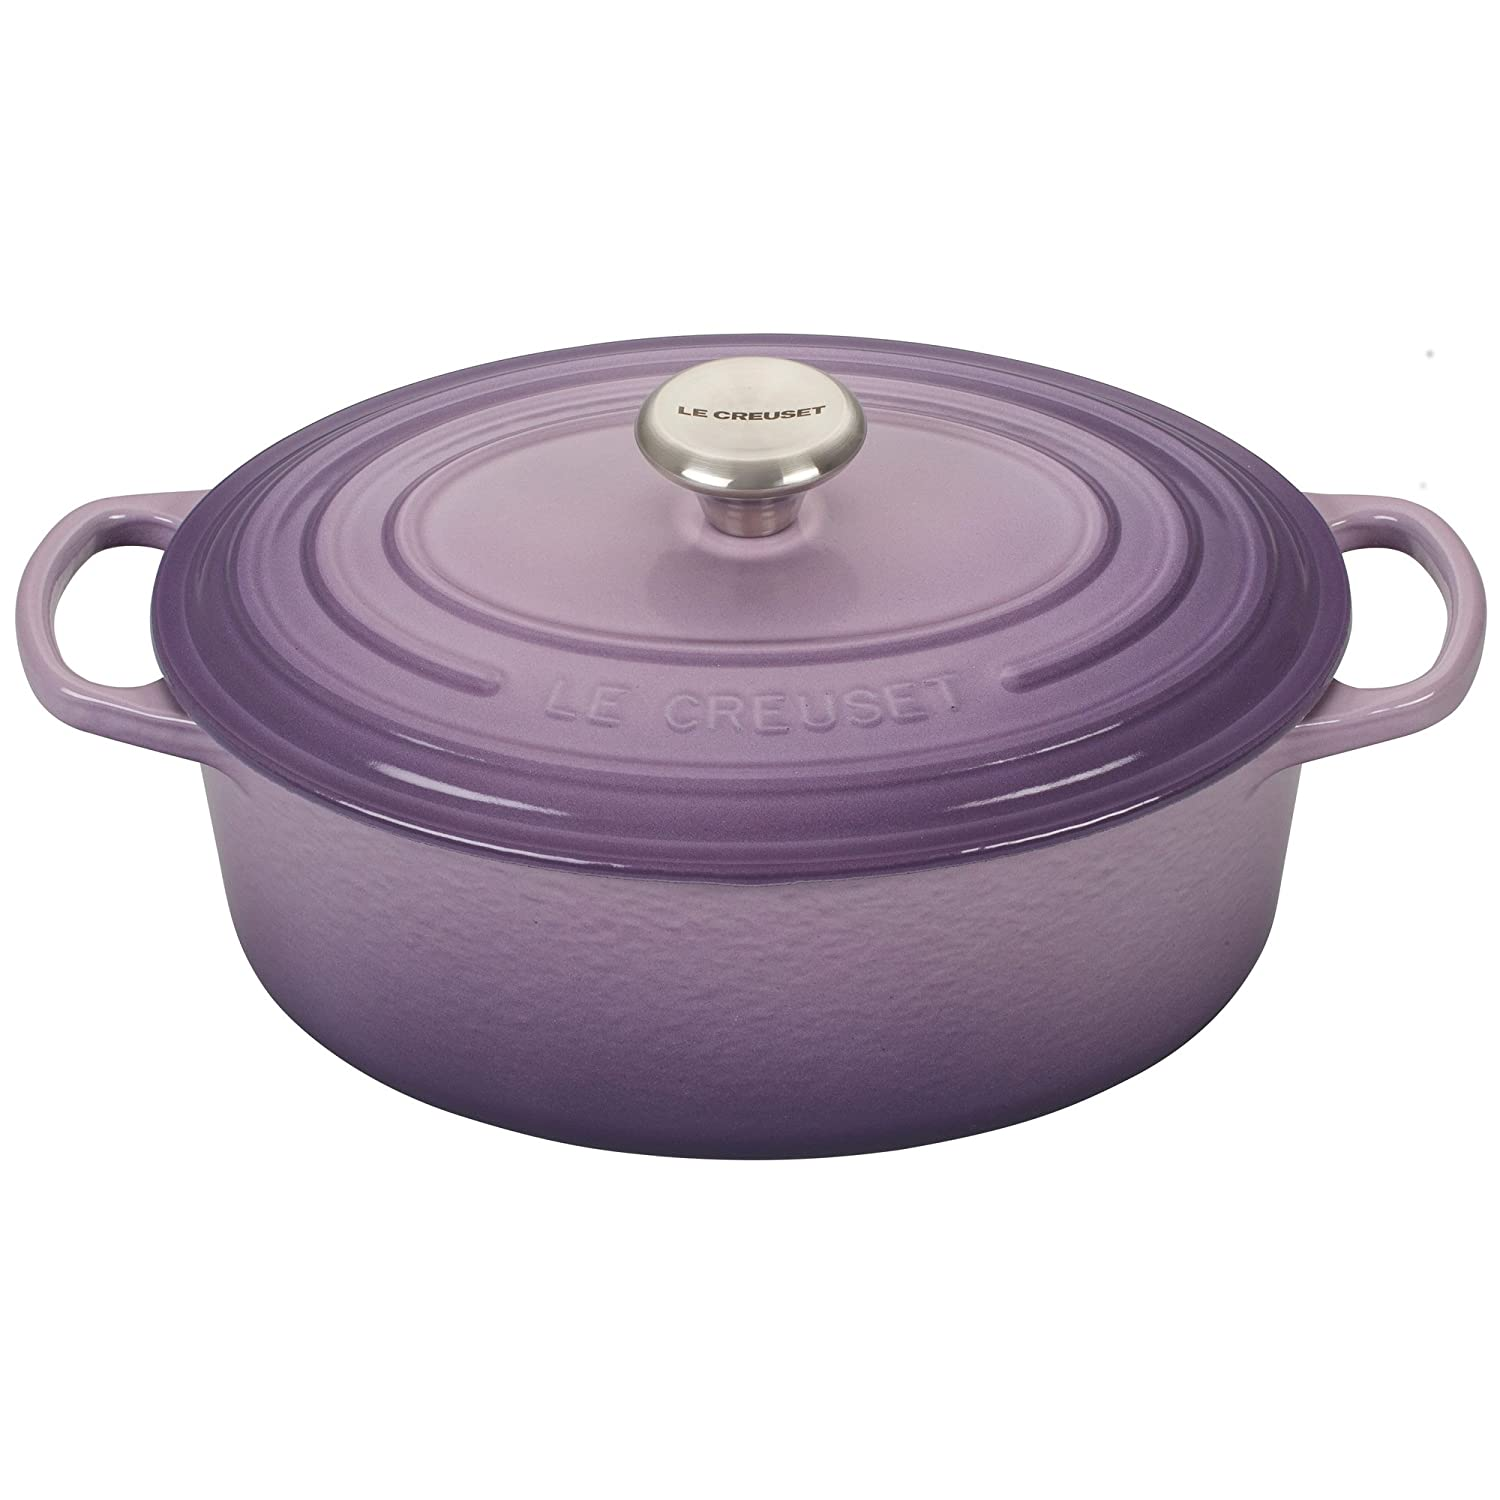 Le Creuset Signature Provence Enameled Cast Iron 2.75 Quart Oval Dutch Oven